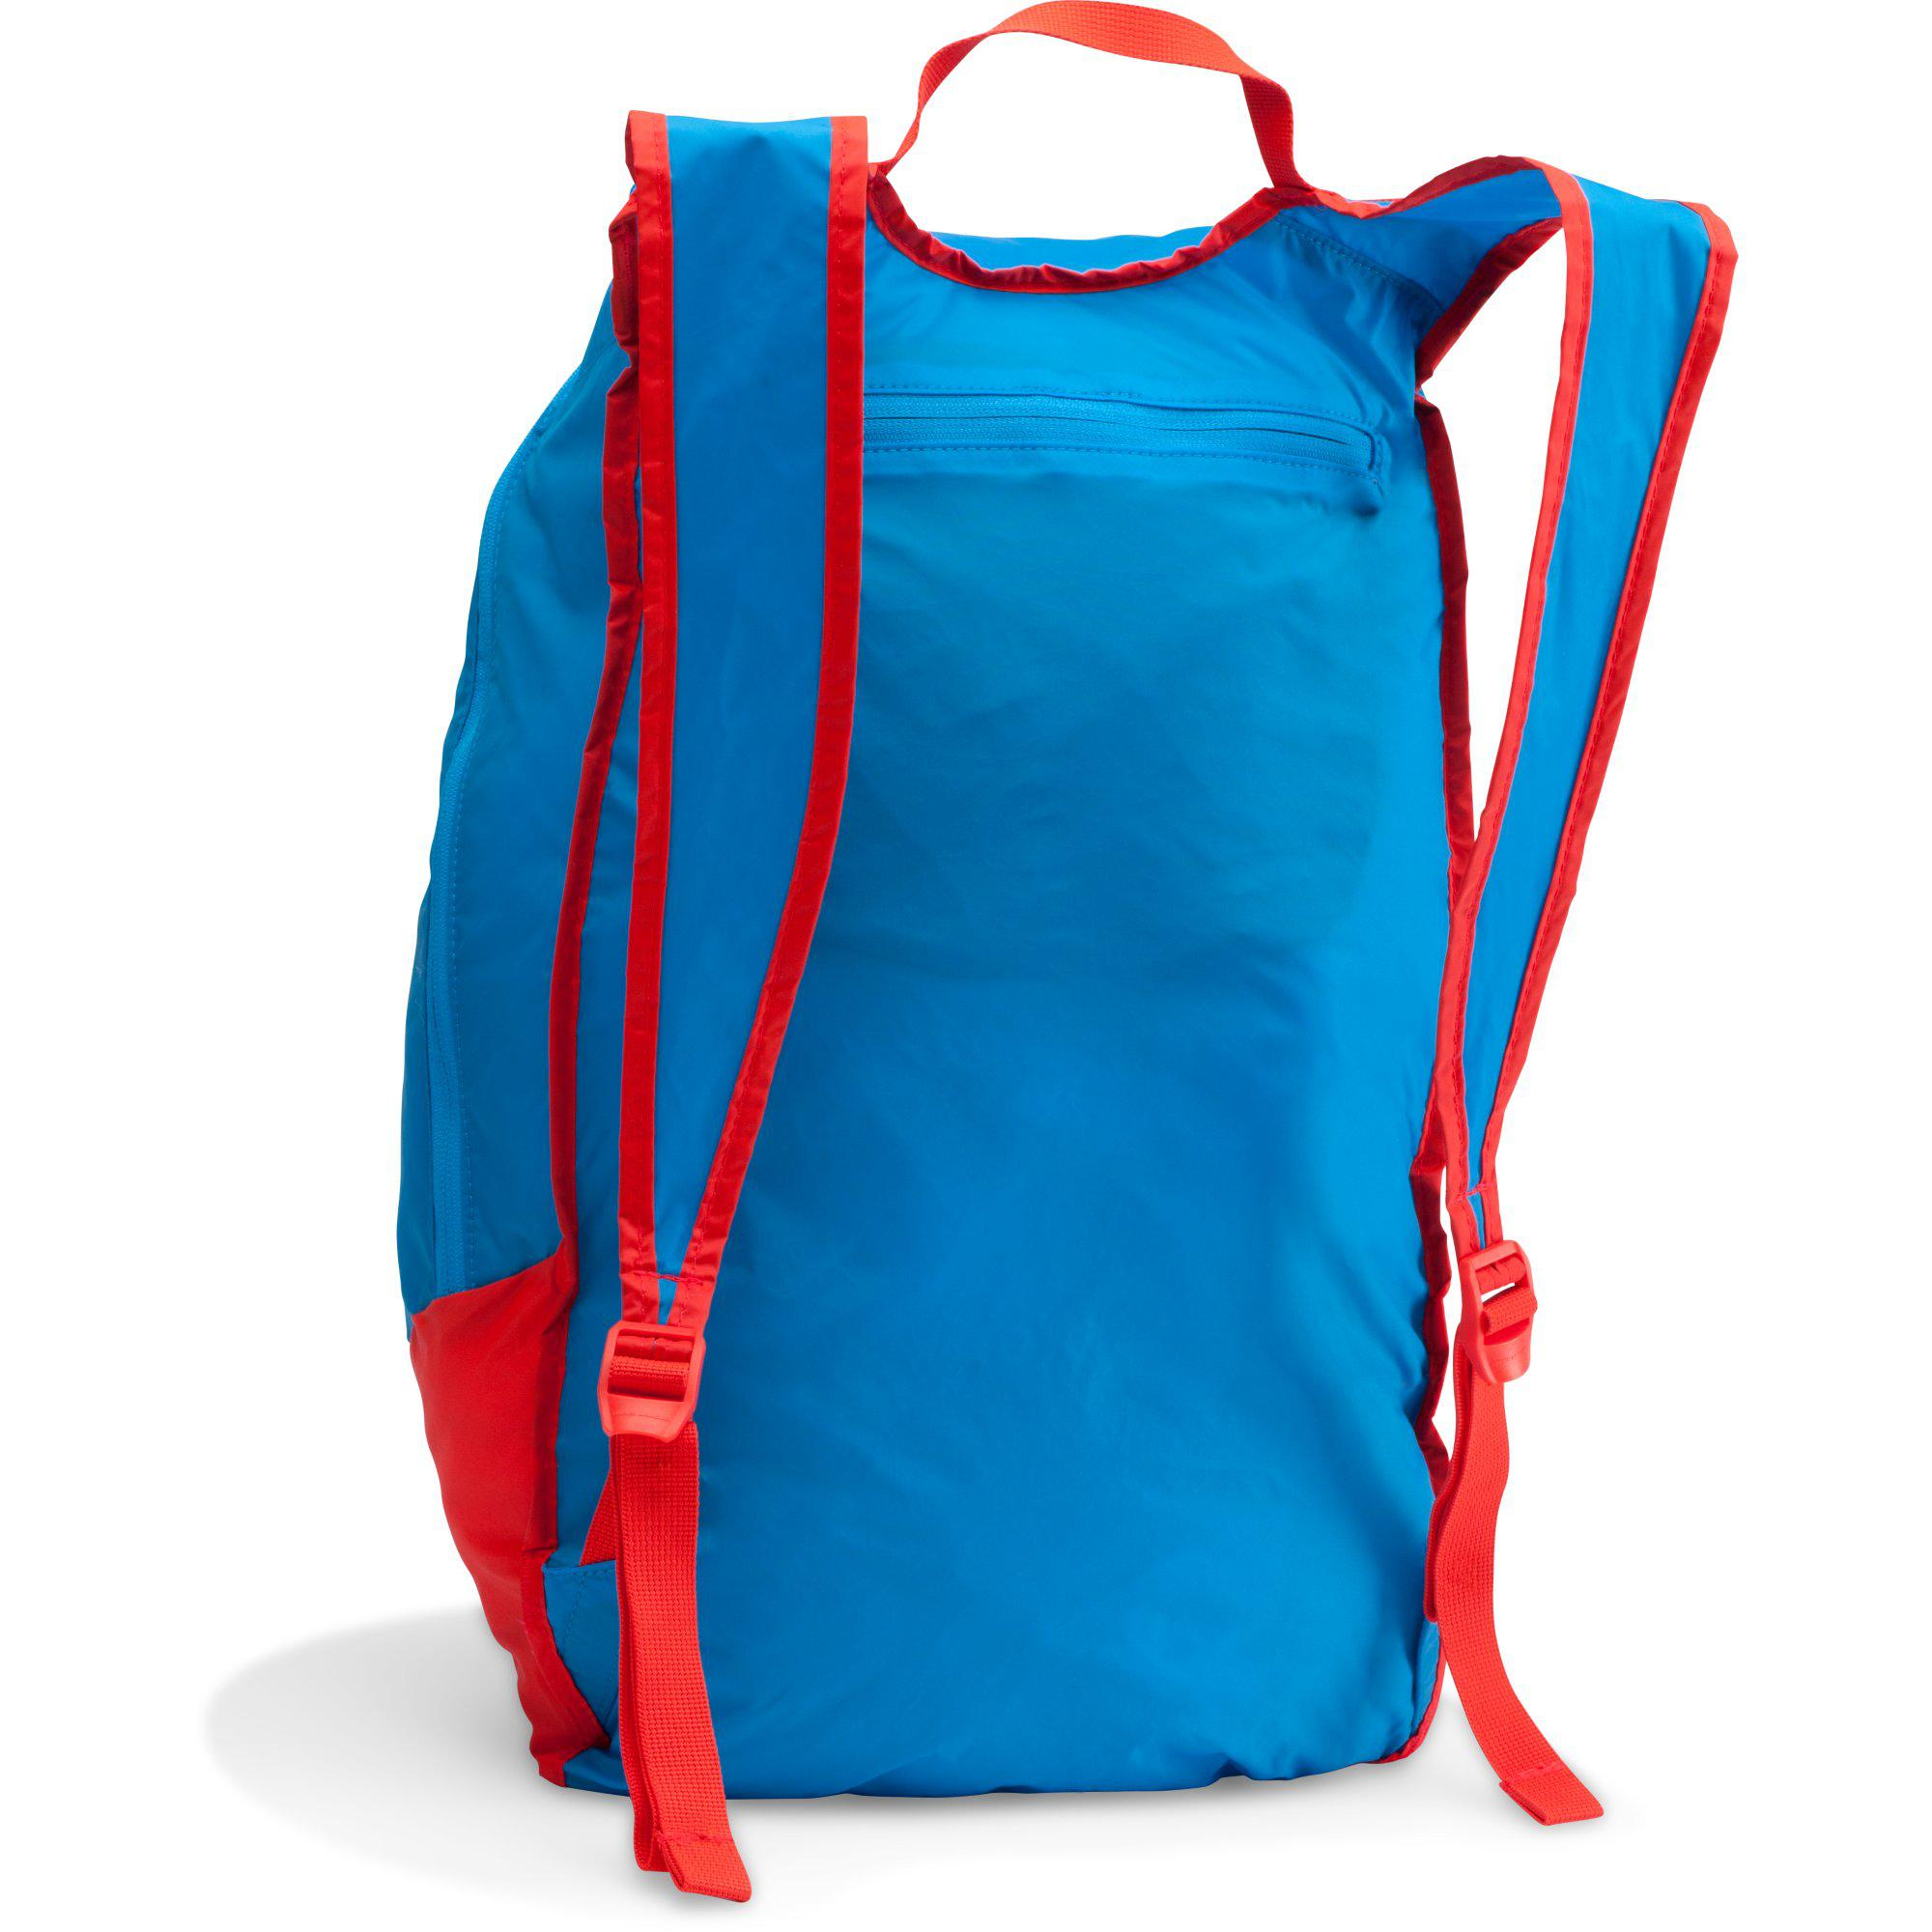 f2a71c521c14 Under Armour Adaptable Backpack - Blue Red - Tennisnuts.com